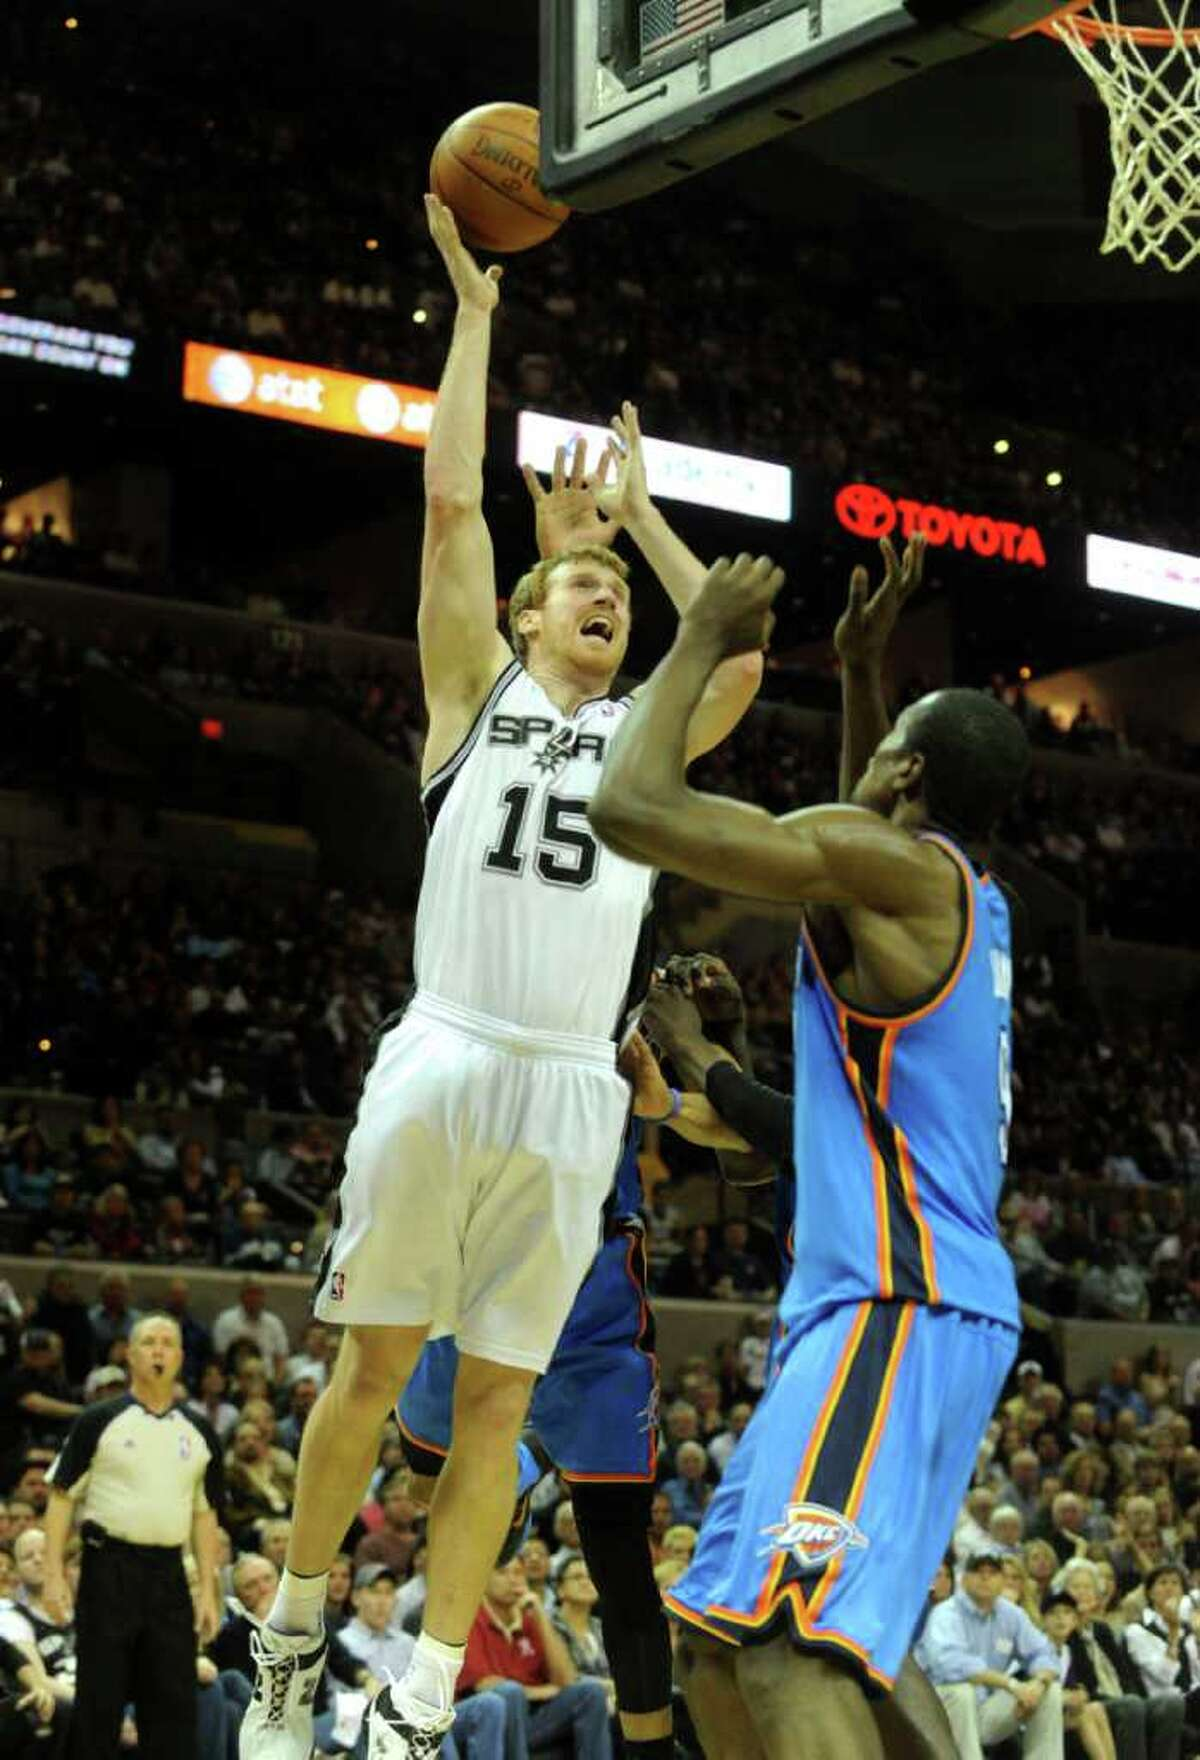 Matt Bonner of the San Antonio Spurs shoots over Serge Ibaka of the Oklahoma City Thunder during second-half NBA action at the AT&T Center on Wednesday, Feb. 23, 2011. BILLY CALZADA / gcalzada@express-news.net Oklahoma City Thunder at San Antonio Spurs